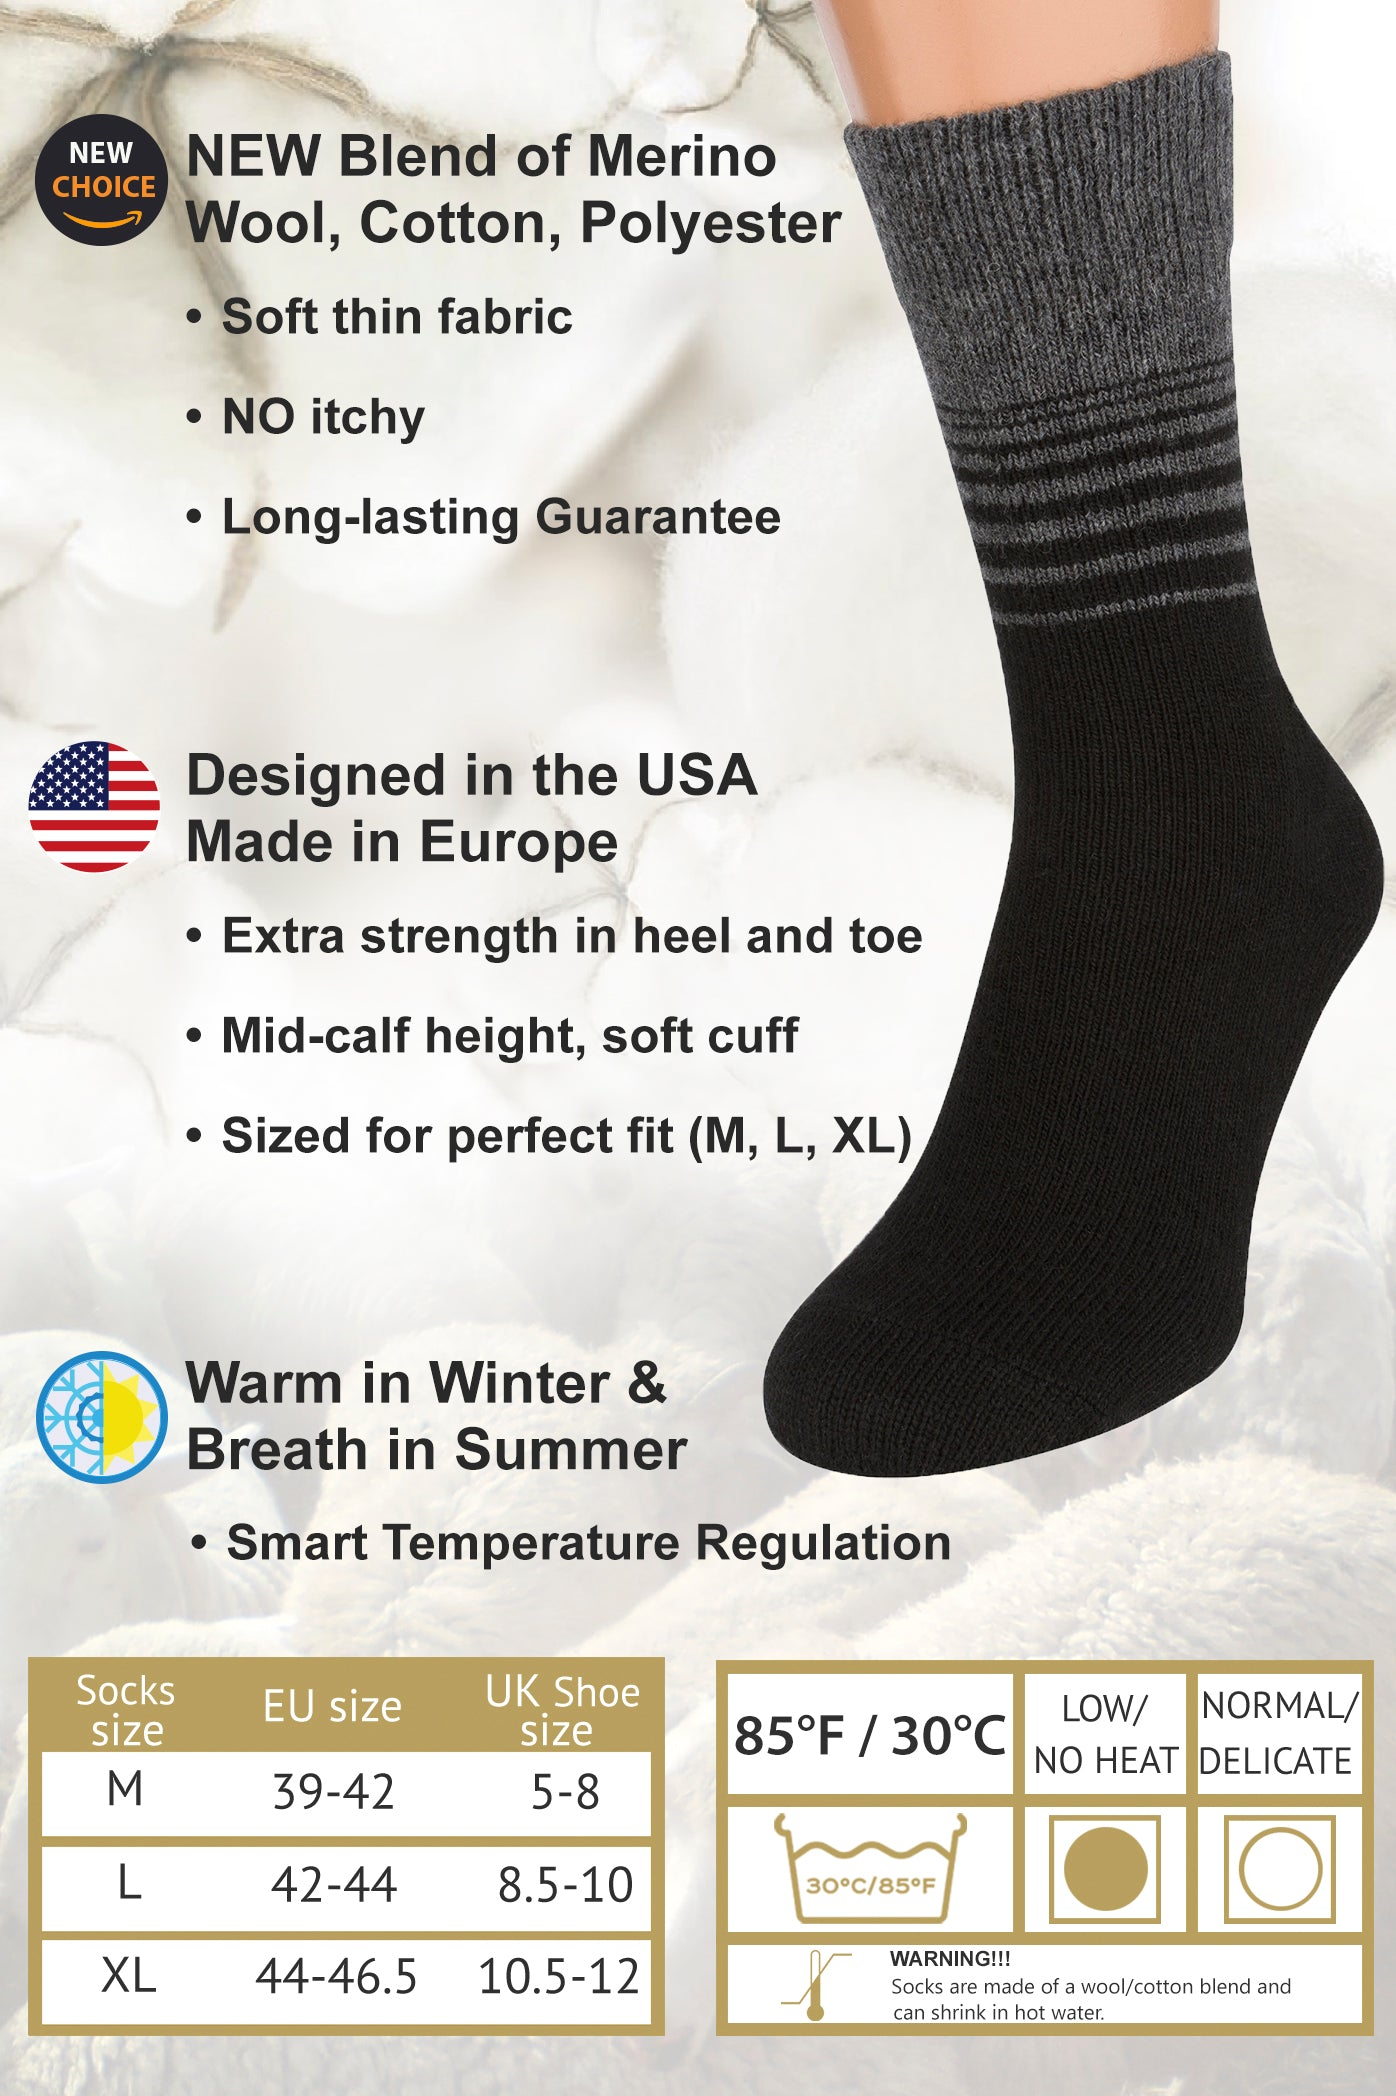 Air Wool Socks, Merino Wool Organic Cotton Thermal Heated Yarn Dress Sox, 2 pair (Striped Black)